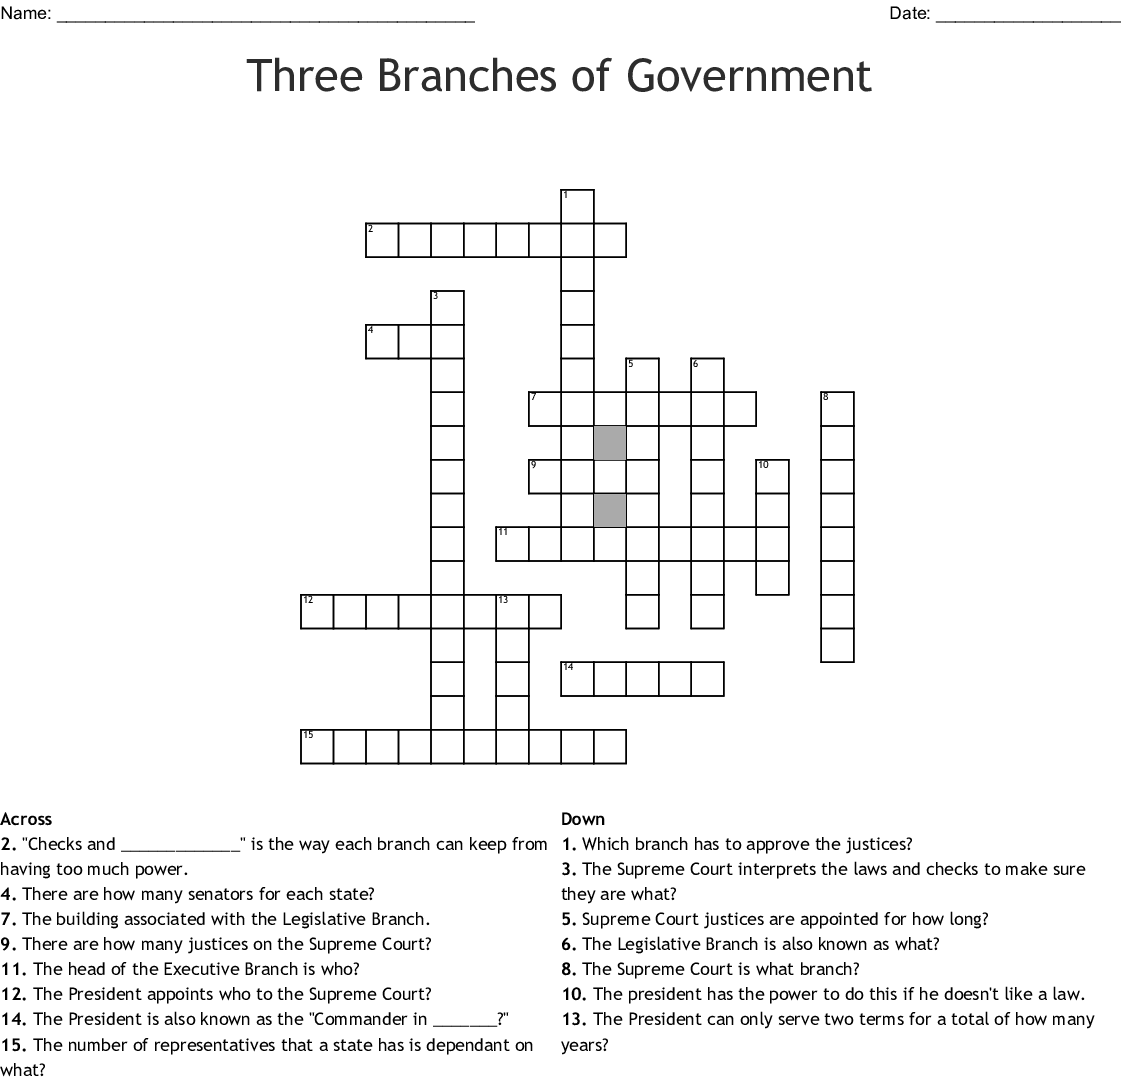 President Crossword Puzzle Worksheet